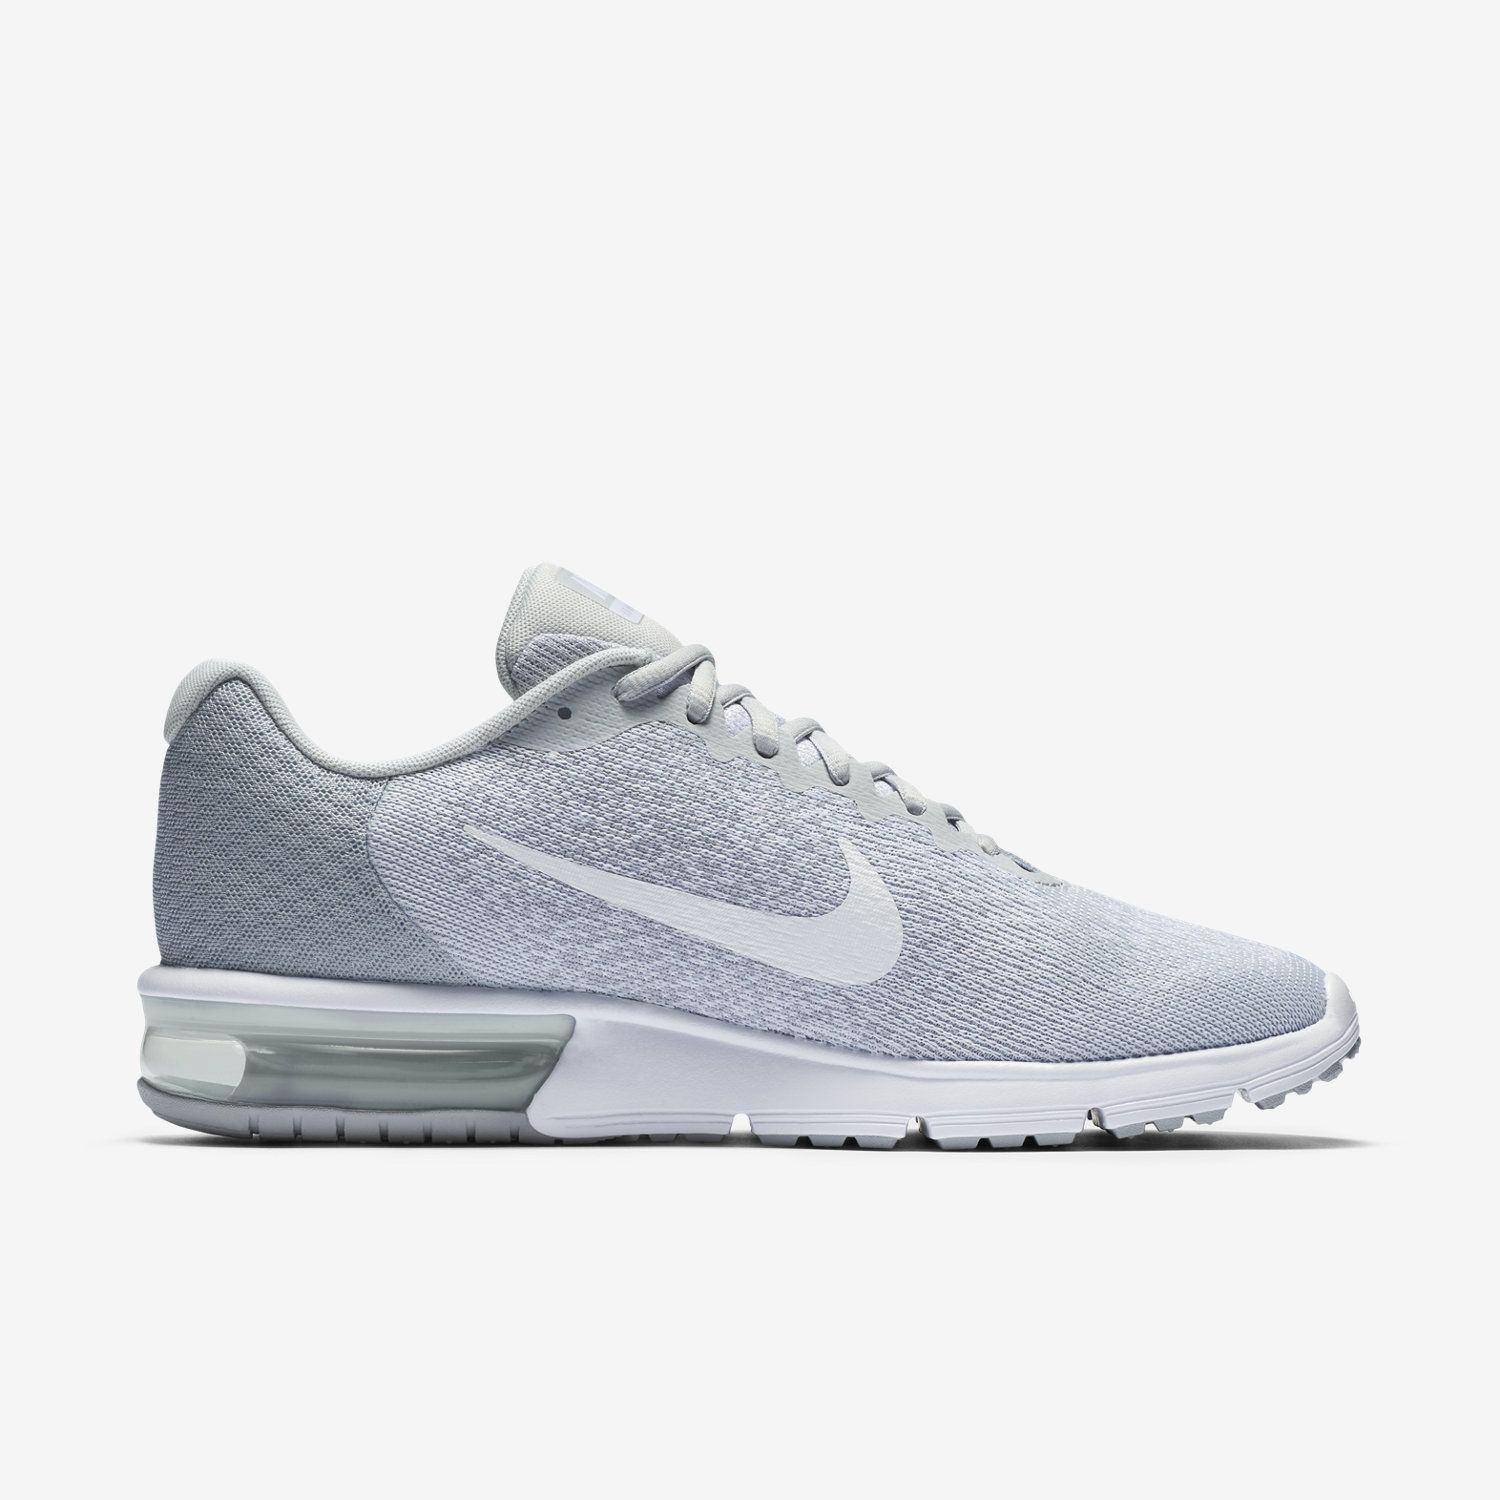 Shop online at Finish Line for Nike Air Max 90 Shoes to upgrade your look.